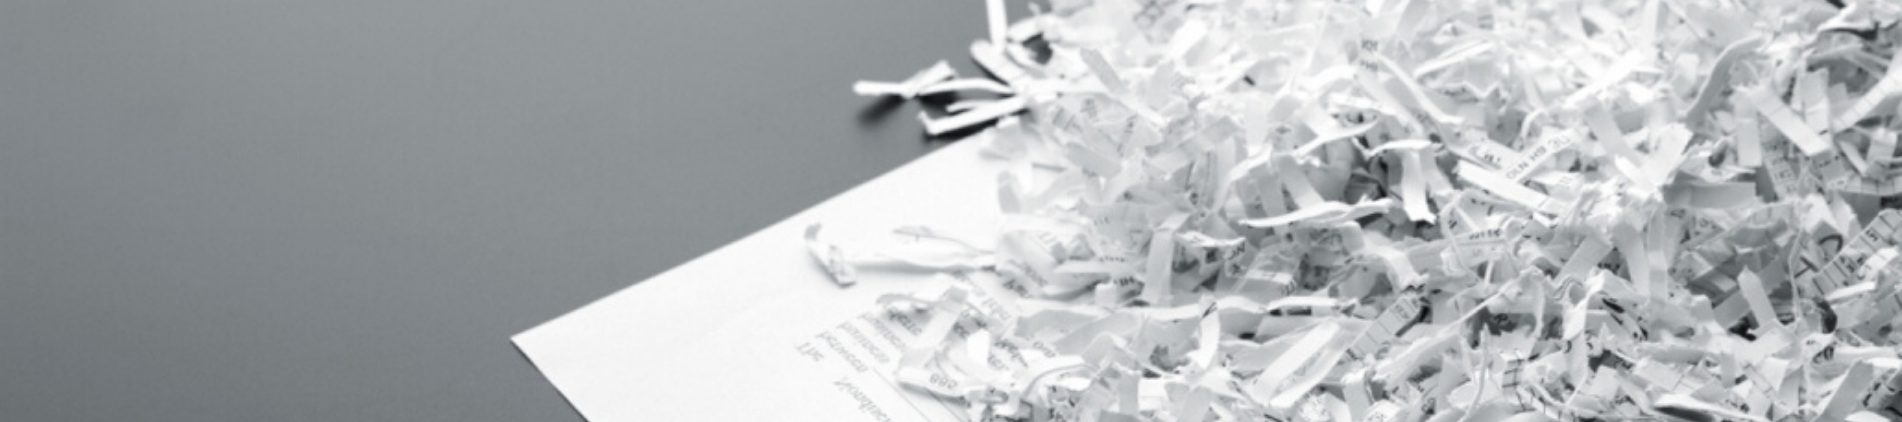 Shredding & Recycling Services